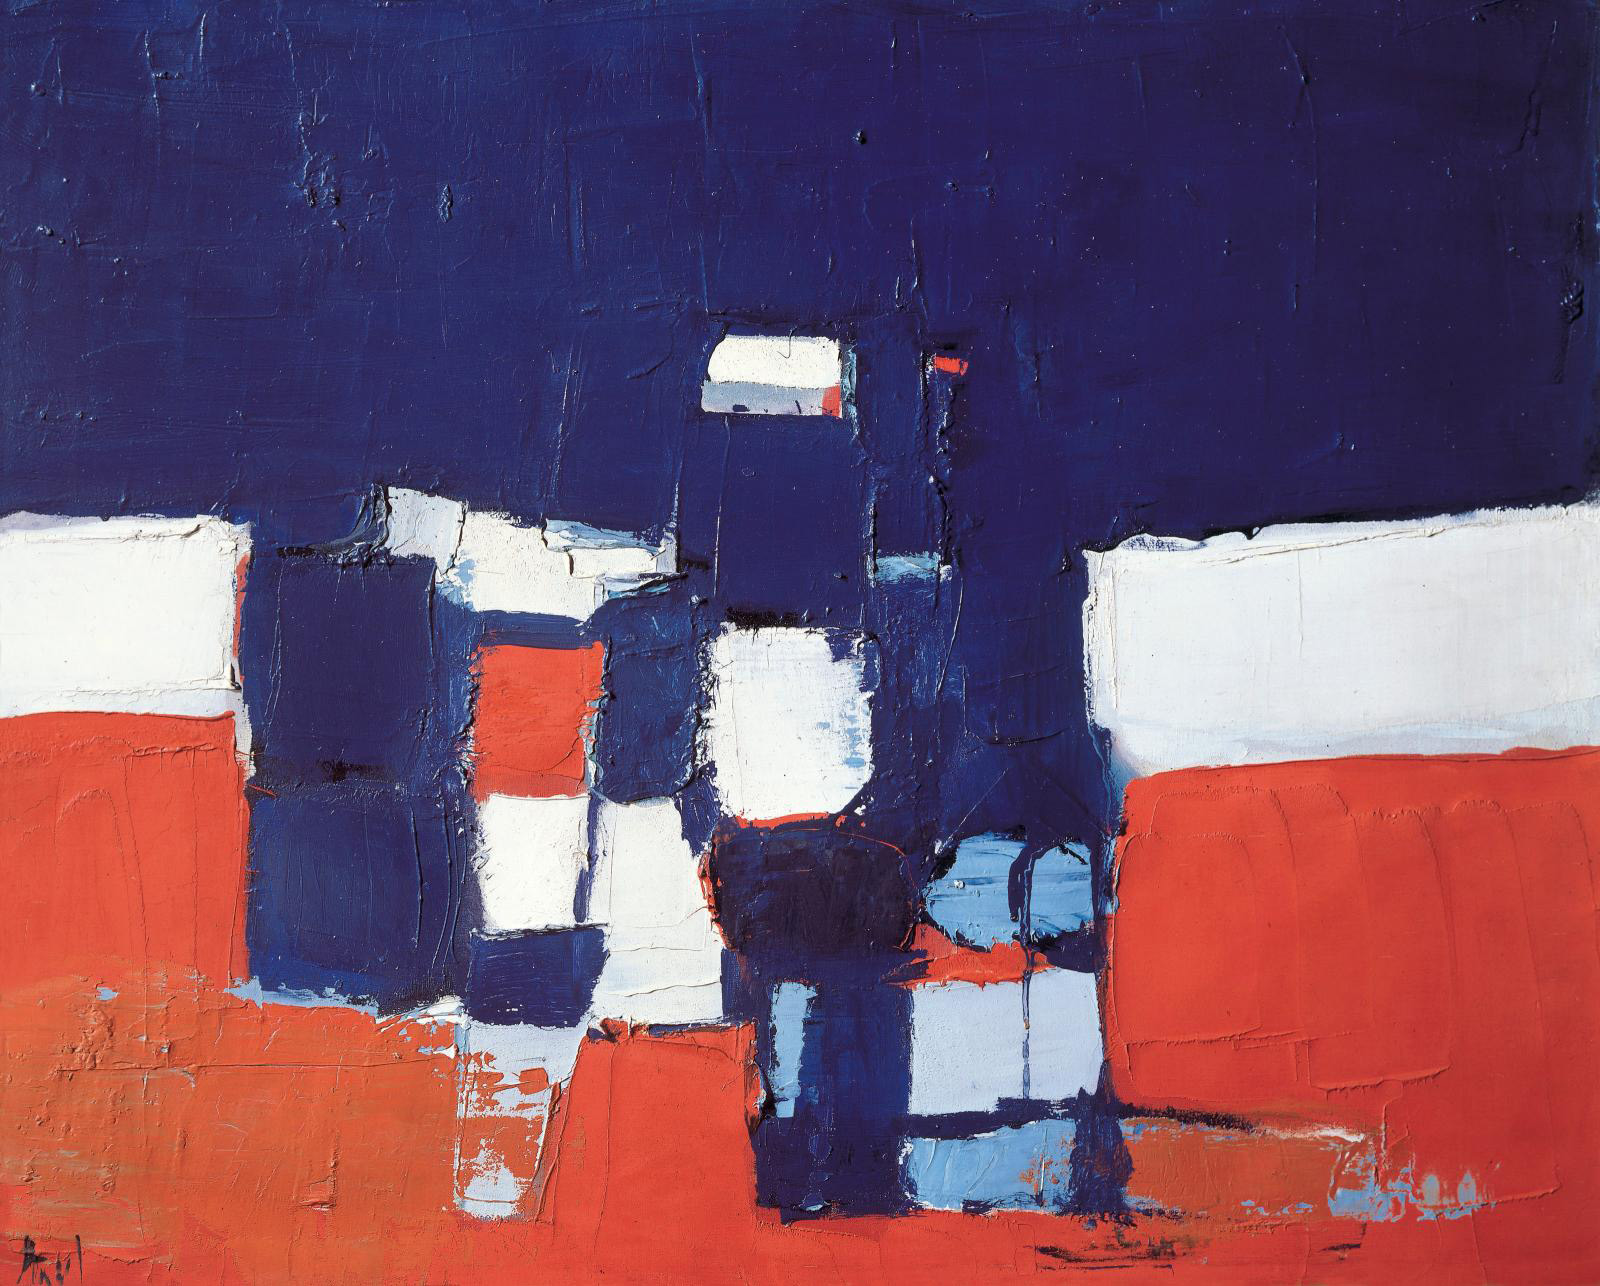 Nicolas de Staël, Les Footballeurs (The Football Players), 1952, Pierre Gianadda foundation collection.© Pierre Gianadda Collection